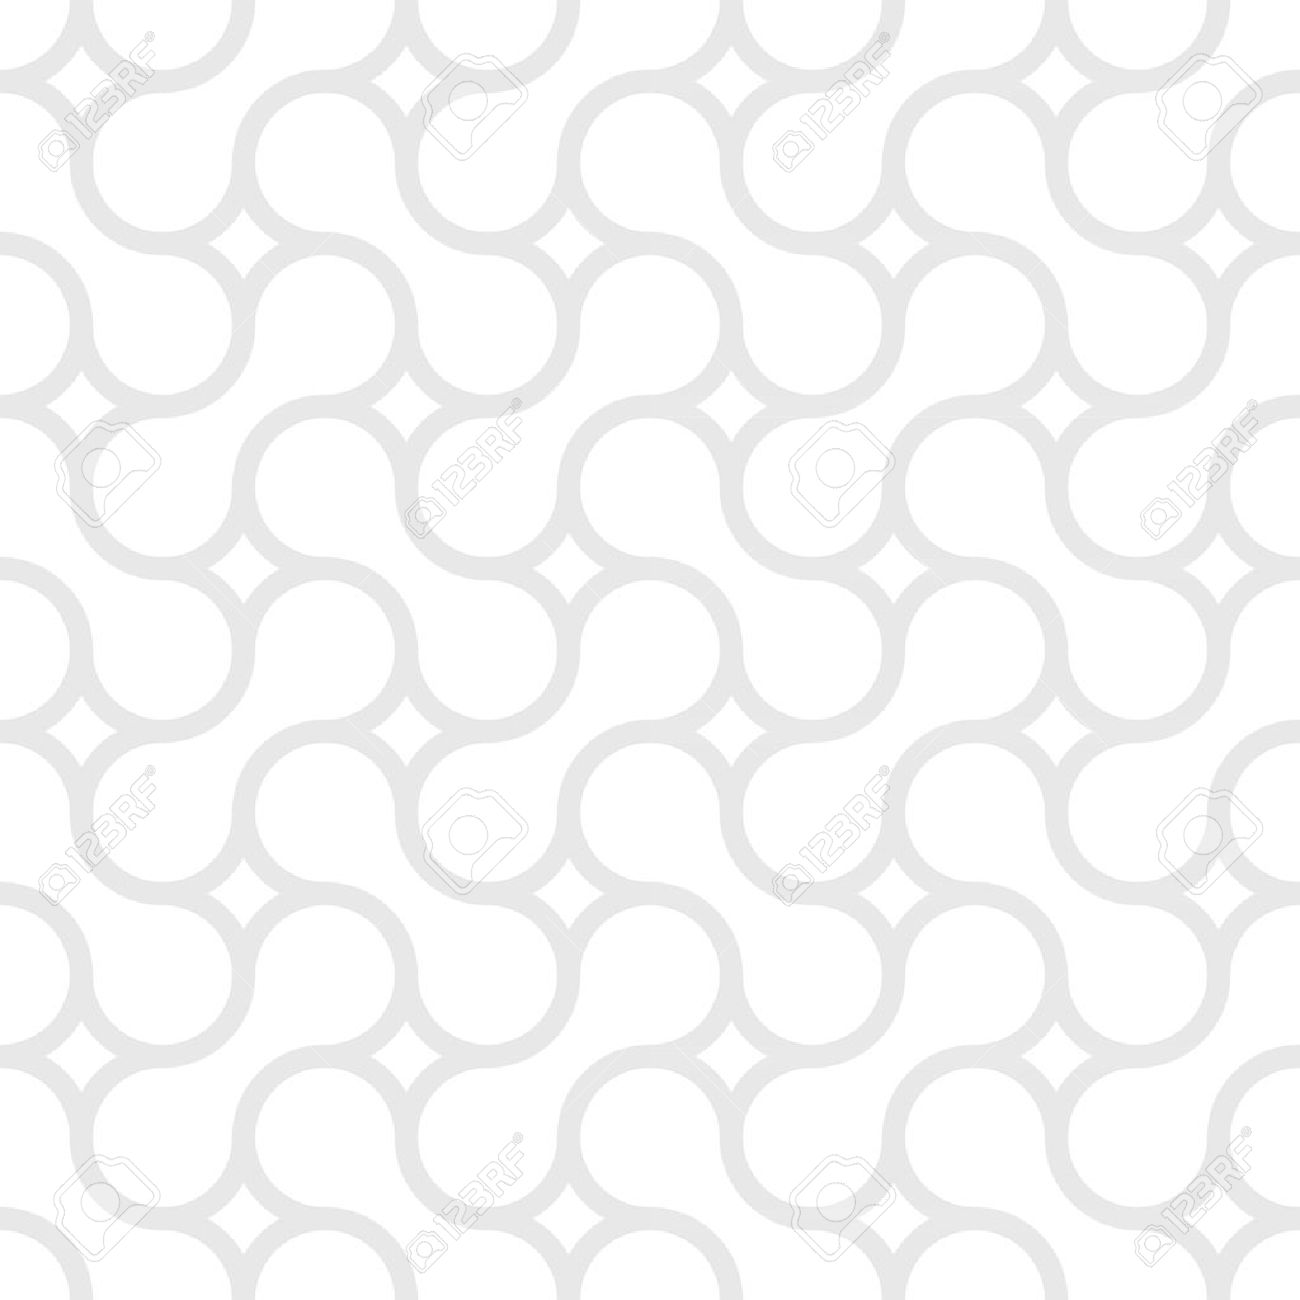 Monochrome simple pattern of gray curved lines Stock Vector - 12903185